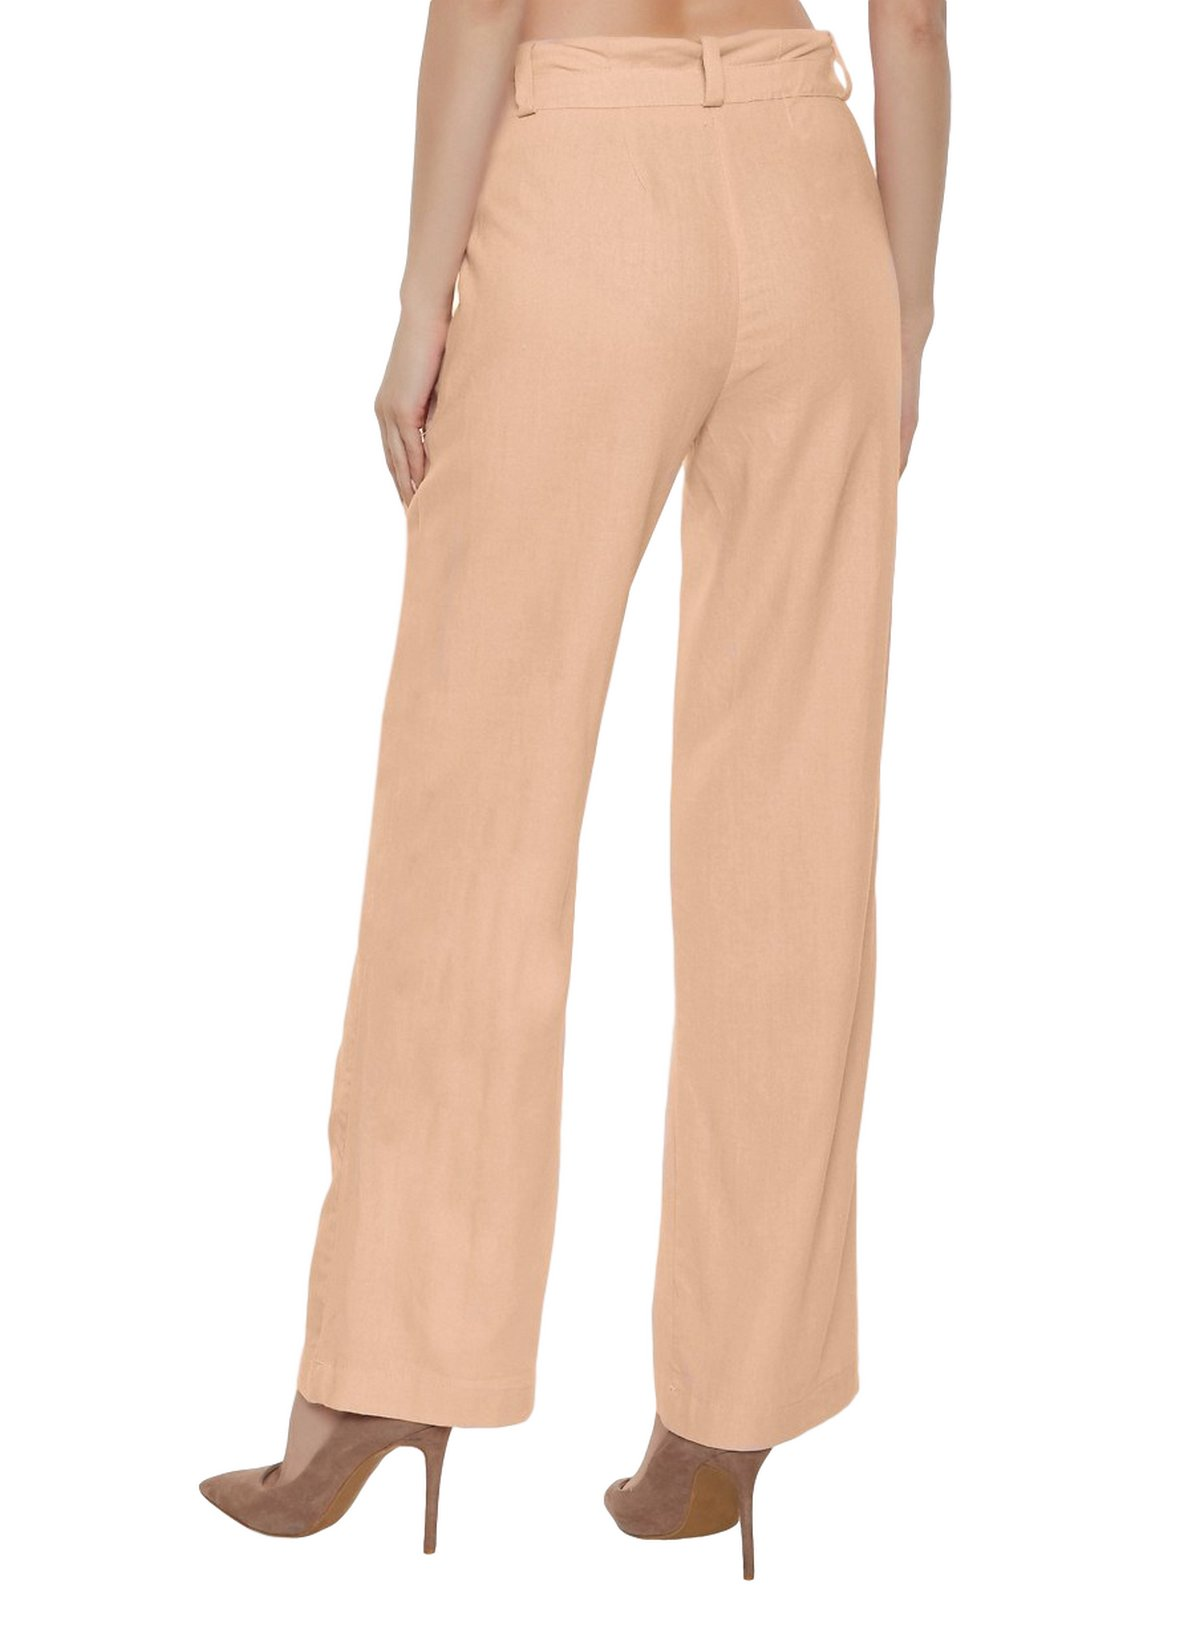 Slim Fit Tights Trousers in Peach